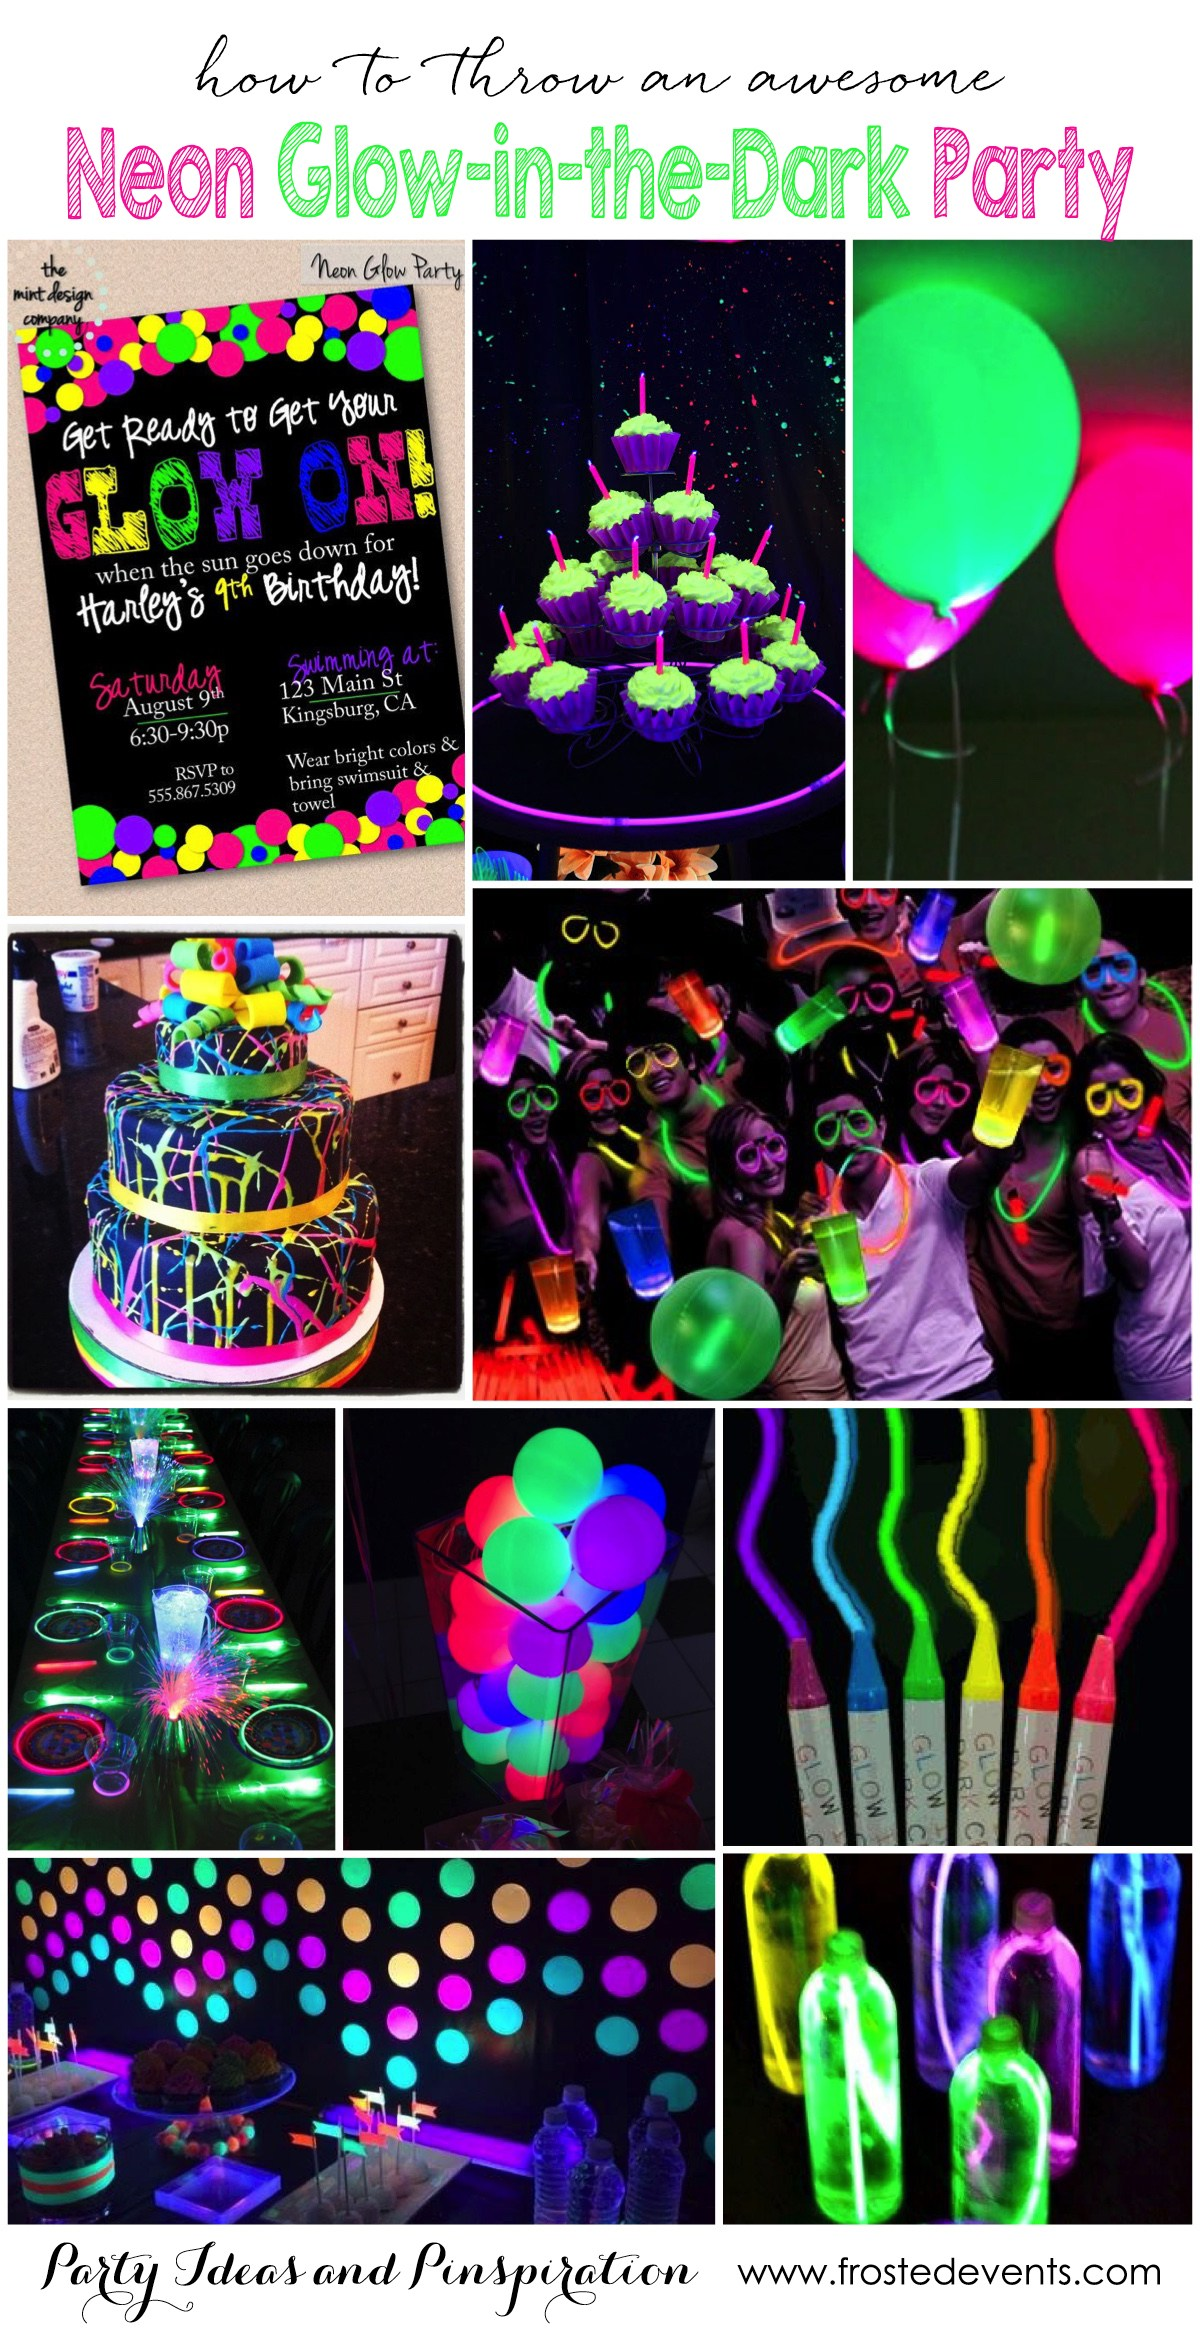 25 Fun Birthday Party Theme Ideas - Fun-Squared